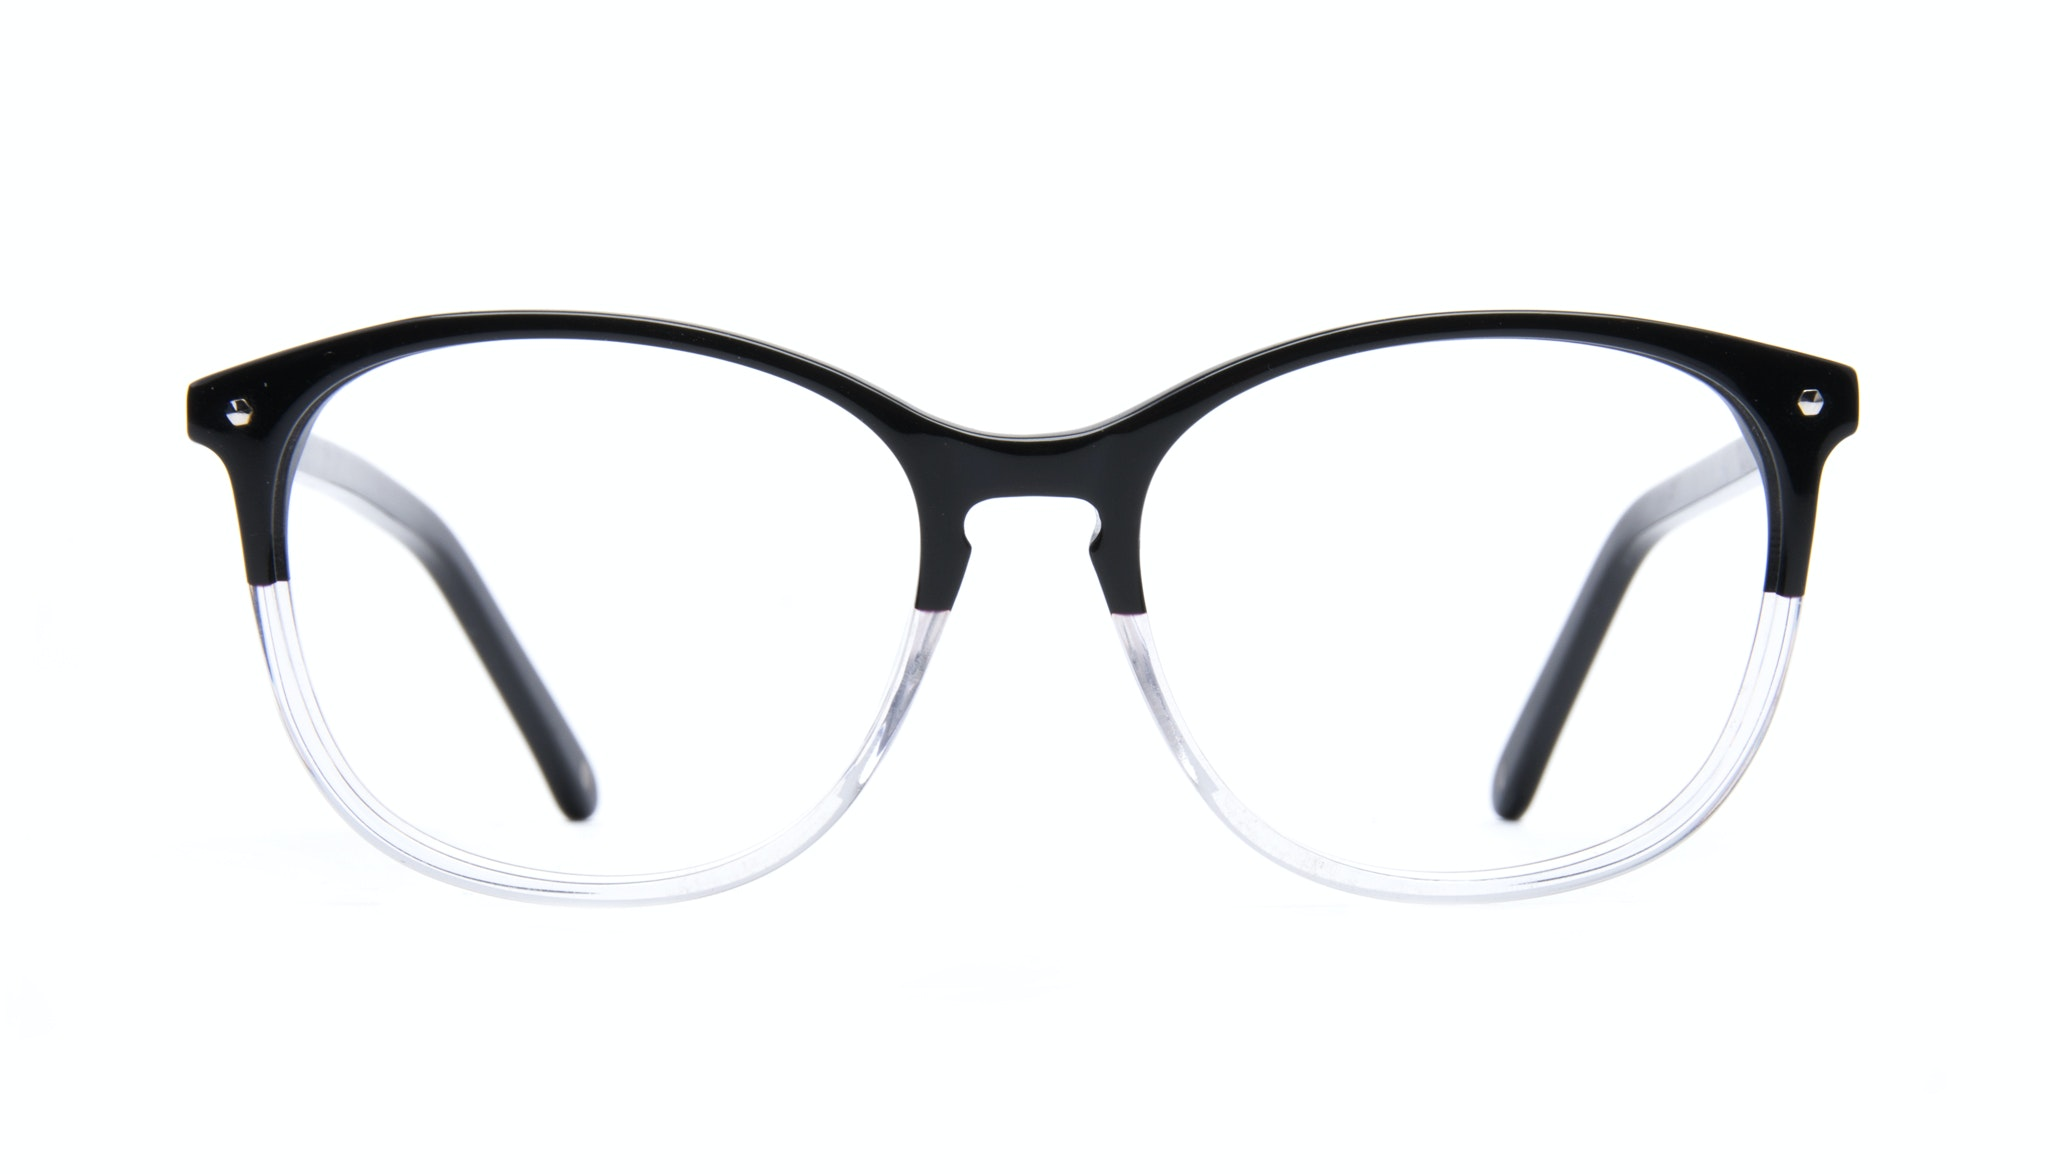 Affordable Fashion Glasses Rectangle Square Round Eyeglasses Women Nadine Two Tone Black Front